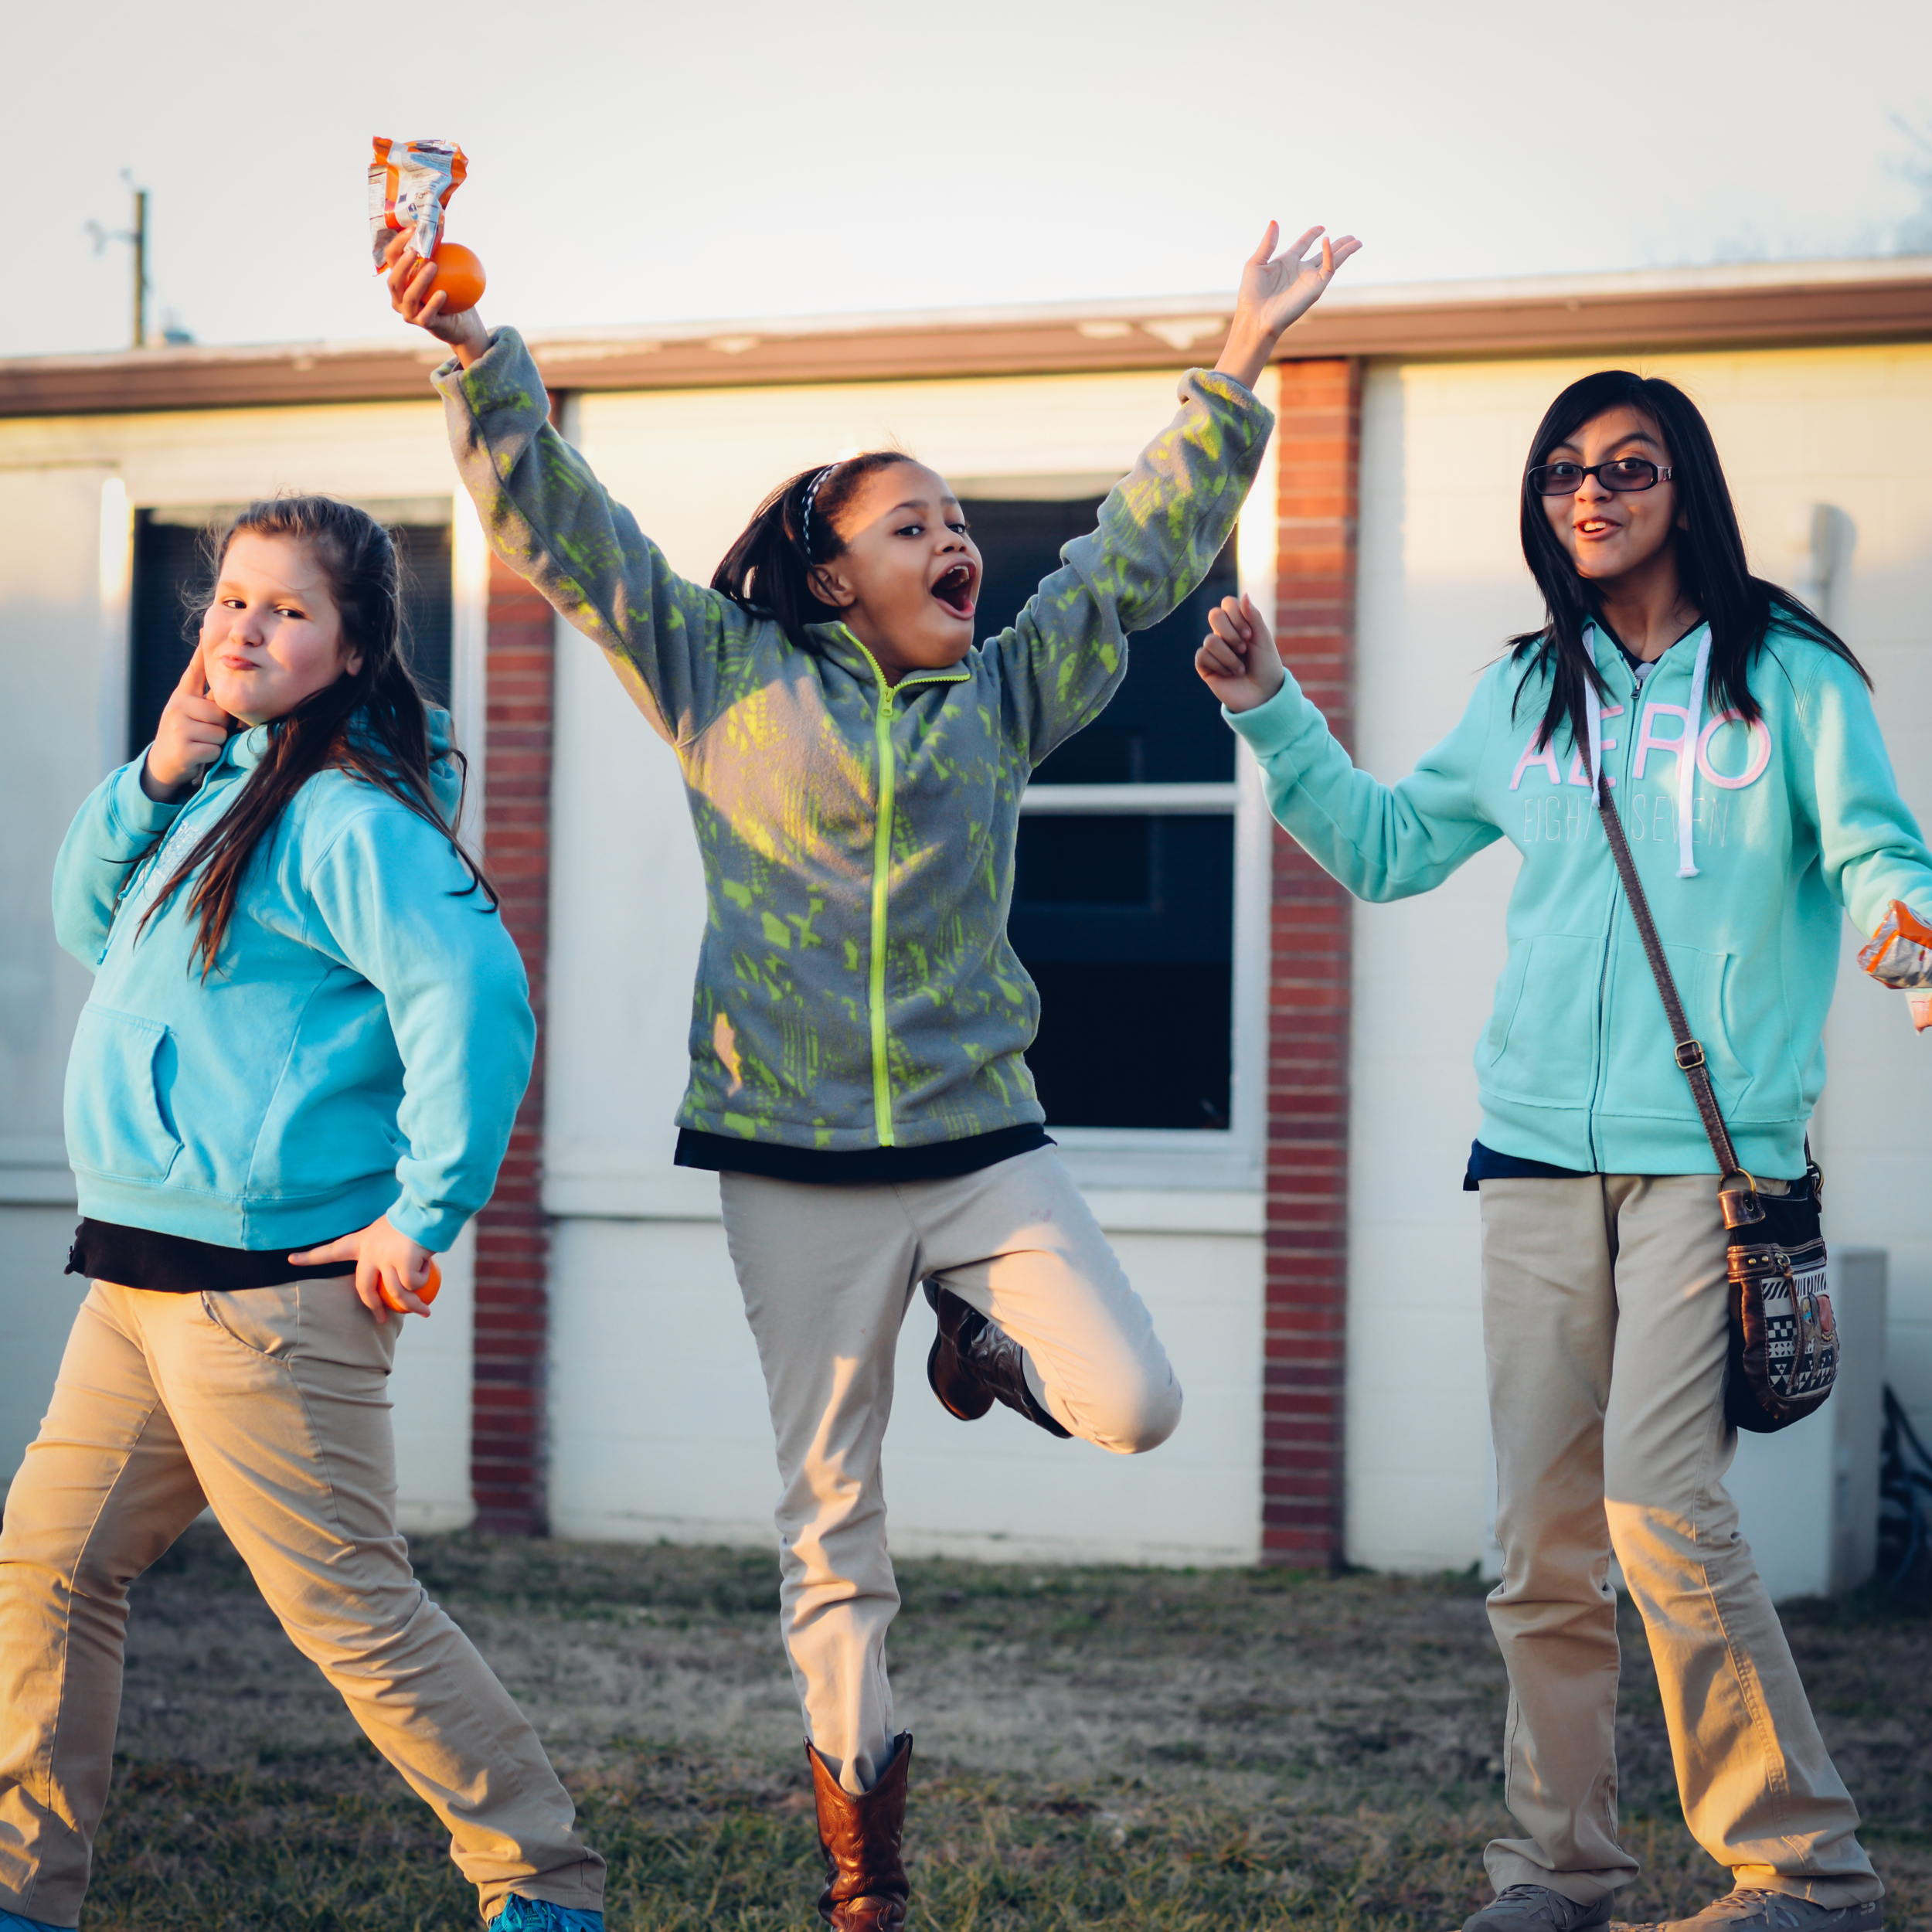 All three of these girls continued in our CASEprogram for a second semester. They not only had a great time, but also formed friendships that motivated them to do their best in school, together.